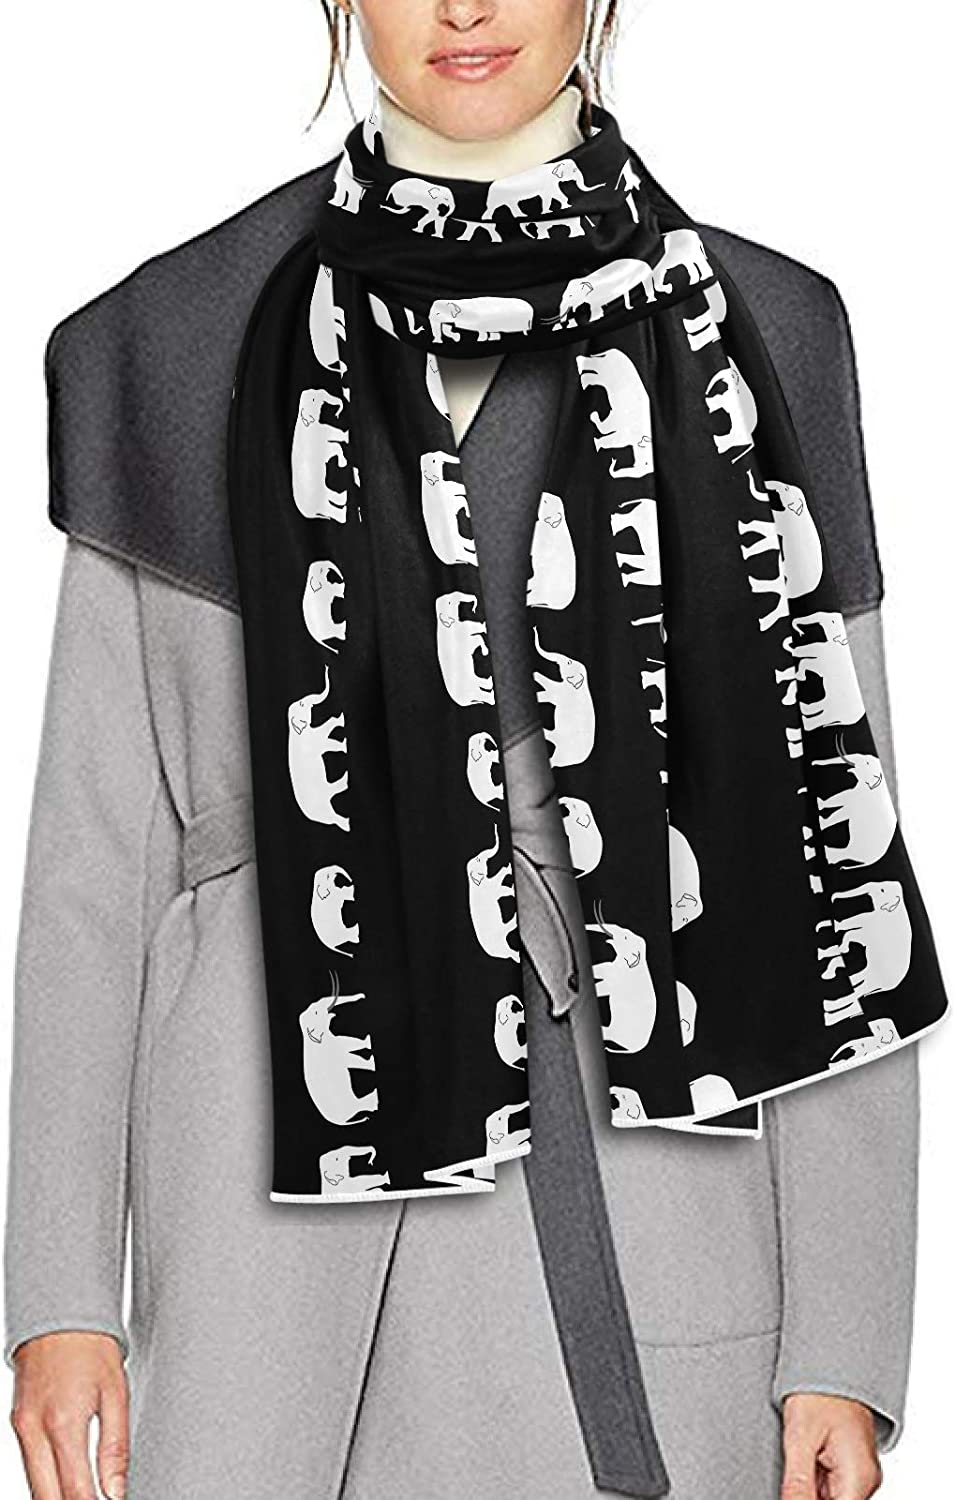 Scarf for Women and Men White Elephants Walking Blanket Shawl Scarf wraps Soft Winter Large Scarves Lightweight